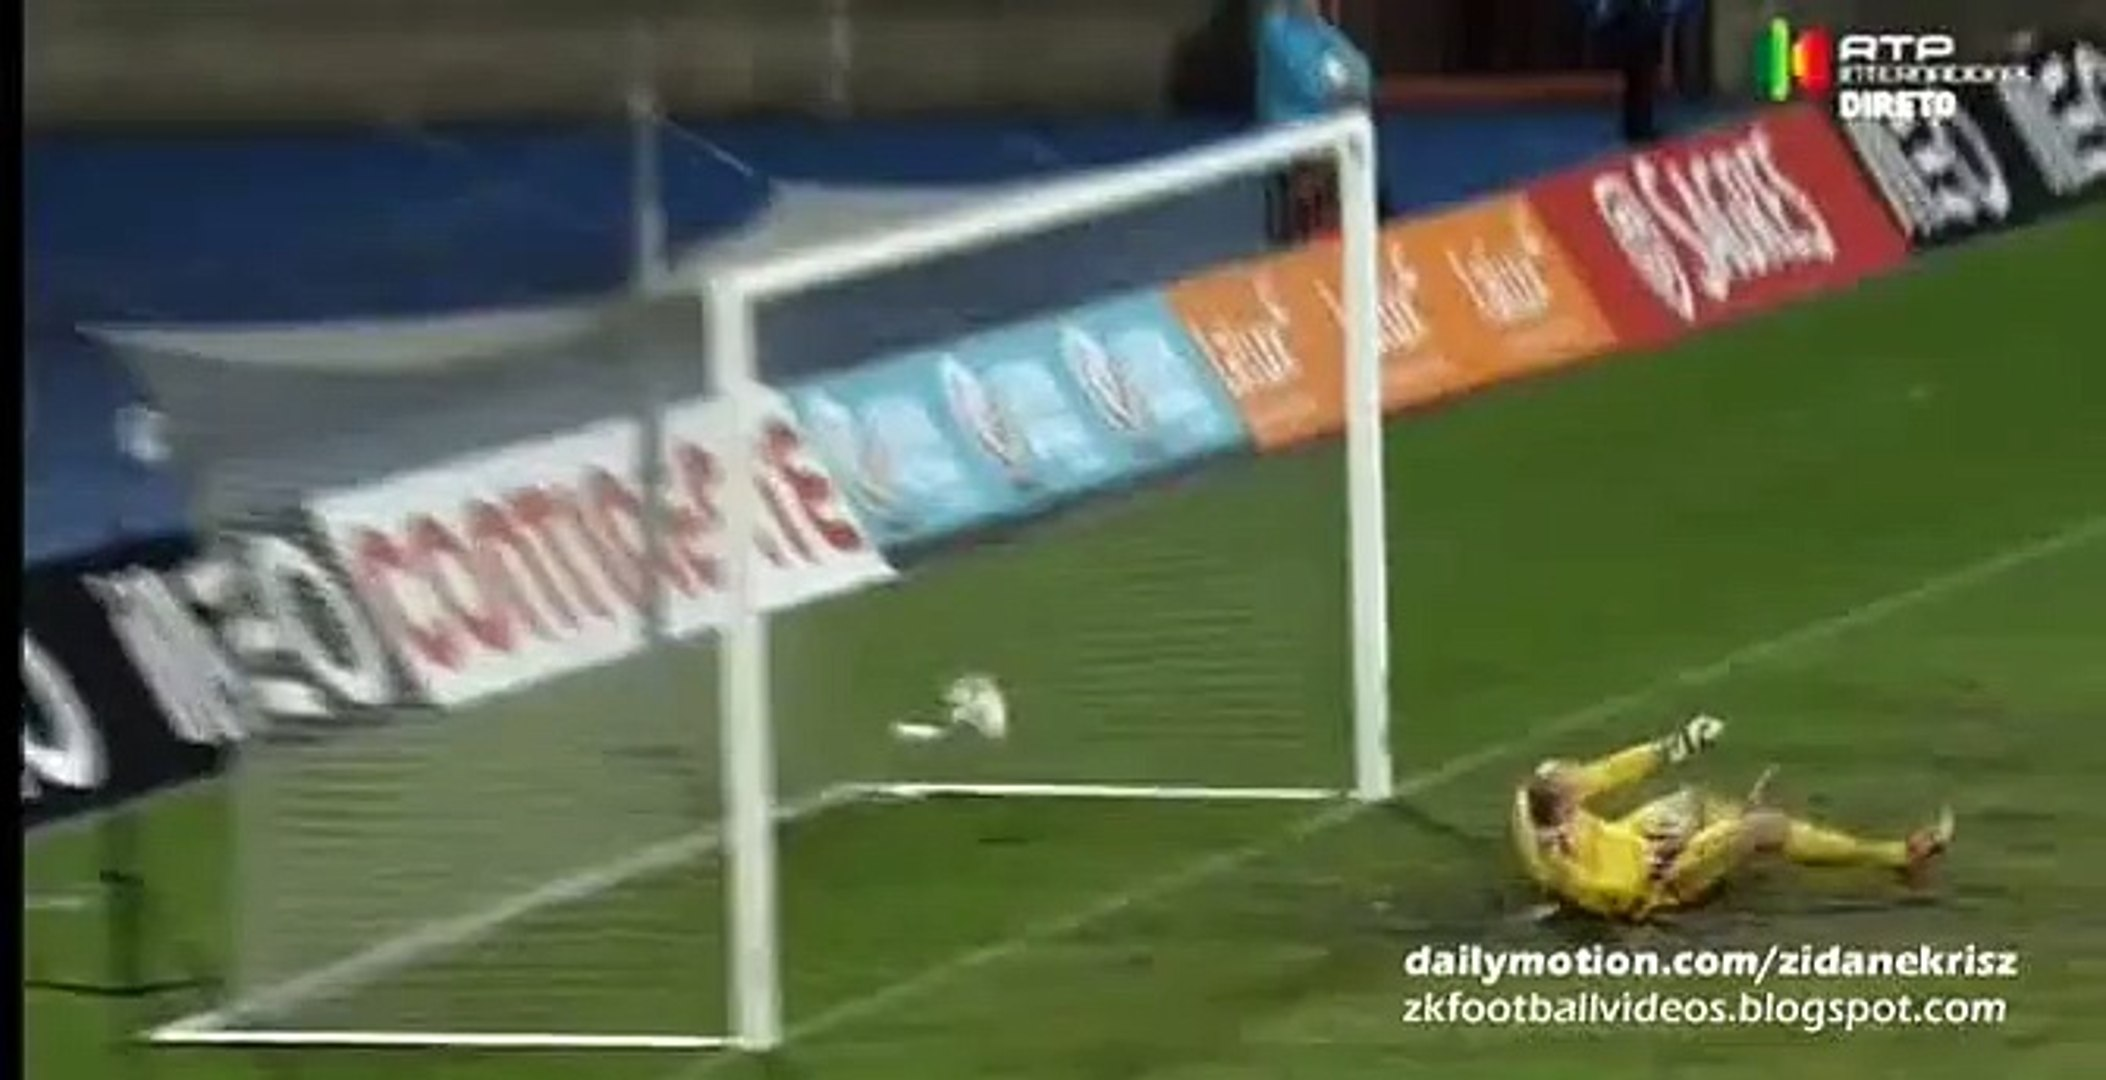 0-1 Andre Andre Goal - Luxembourg v. Portugal 17.11.2015 HD